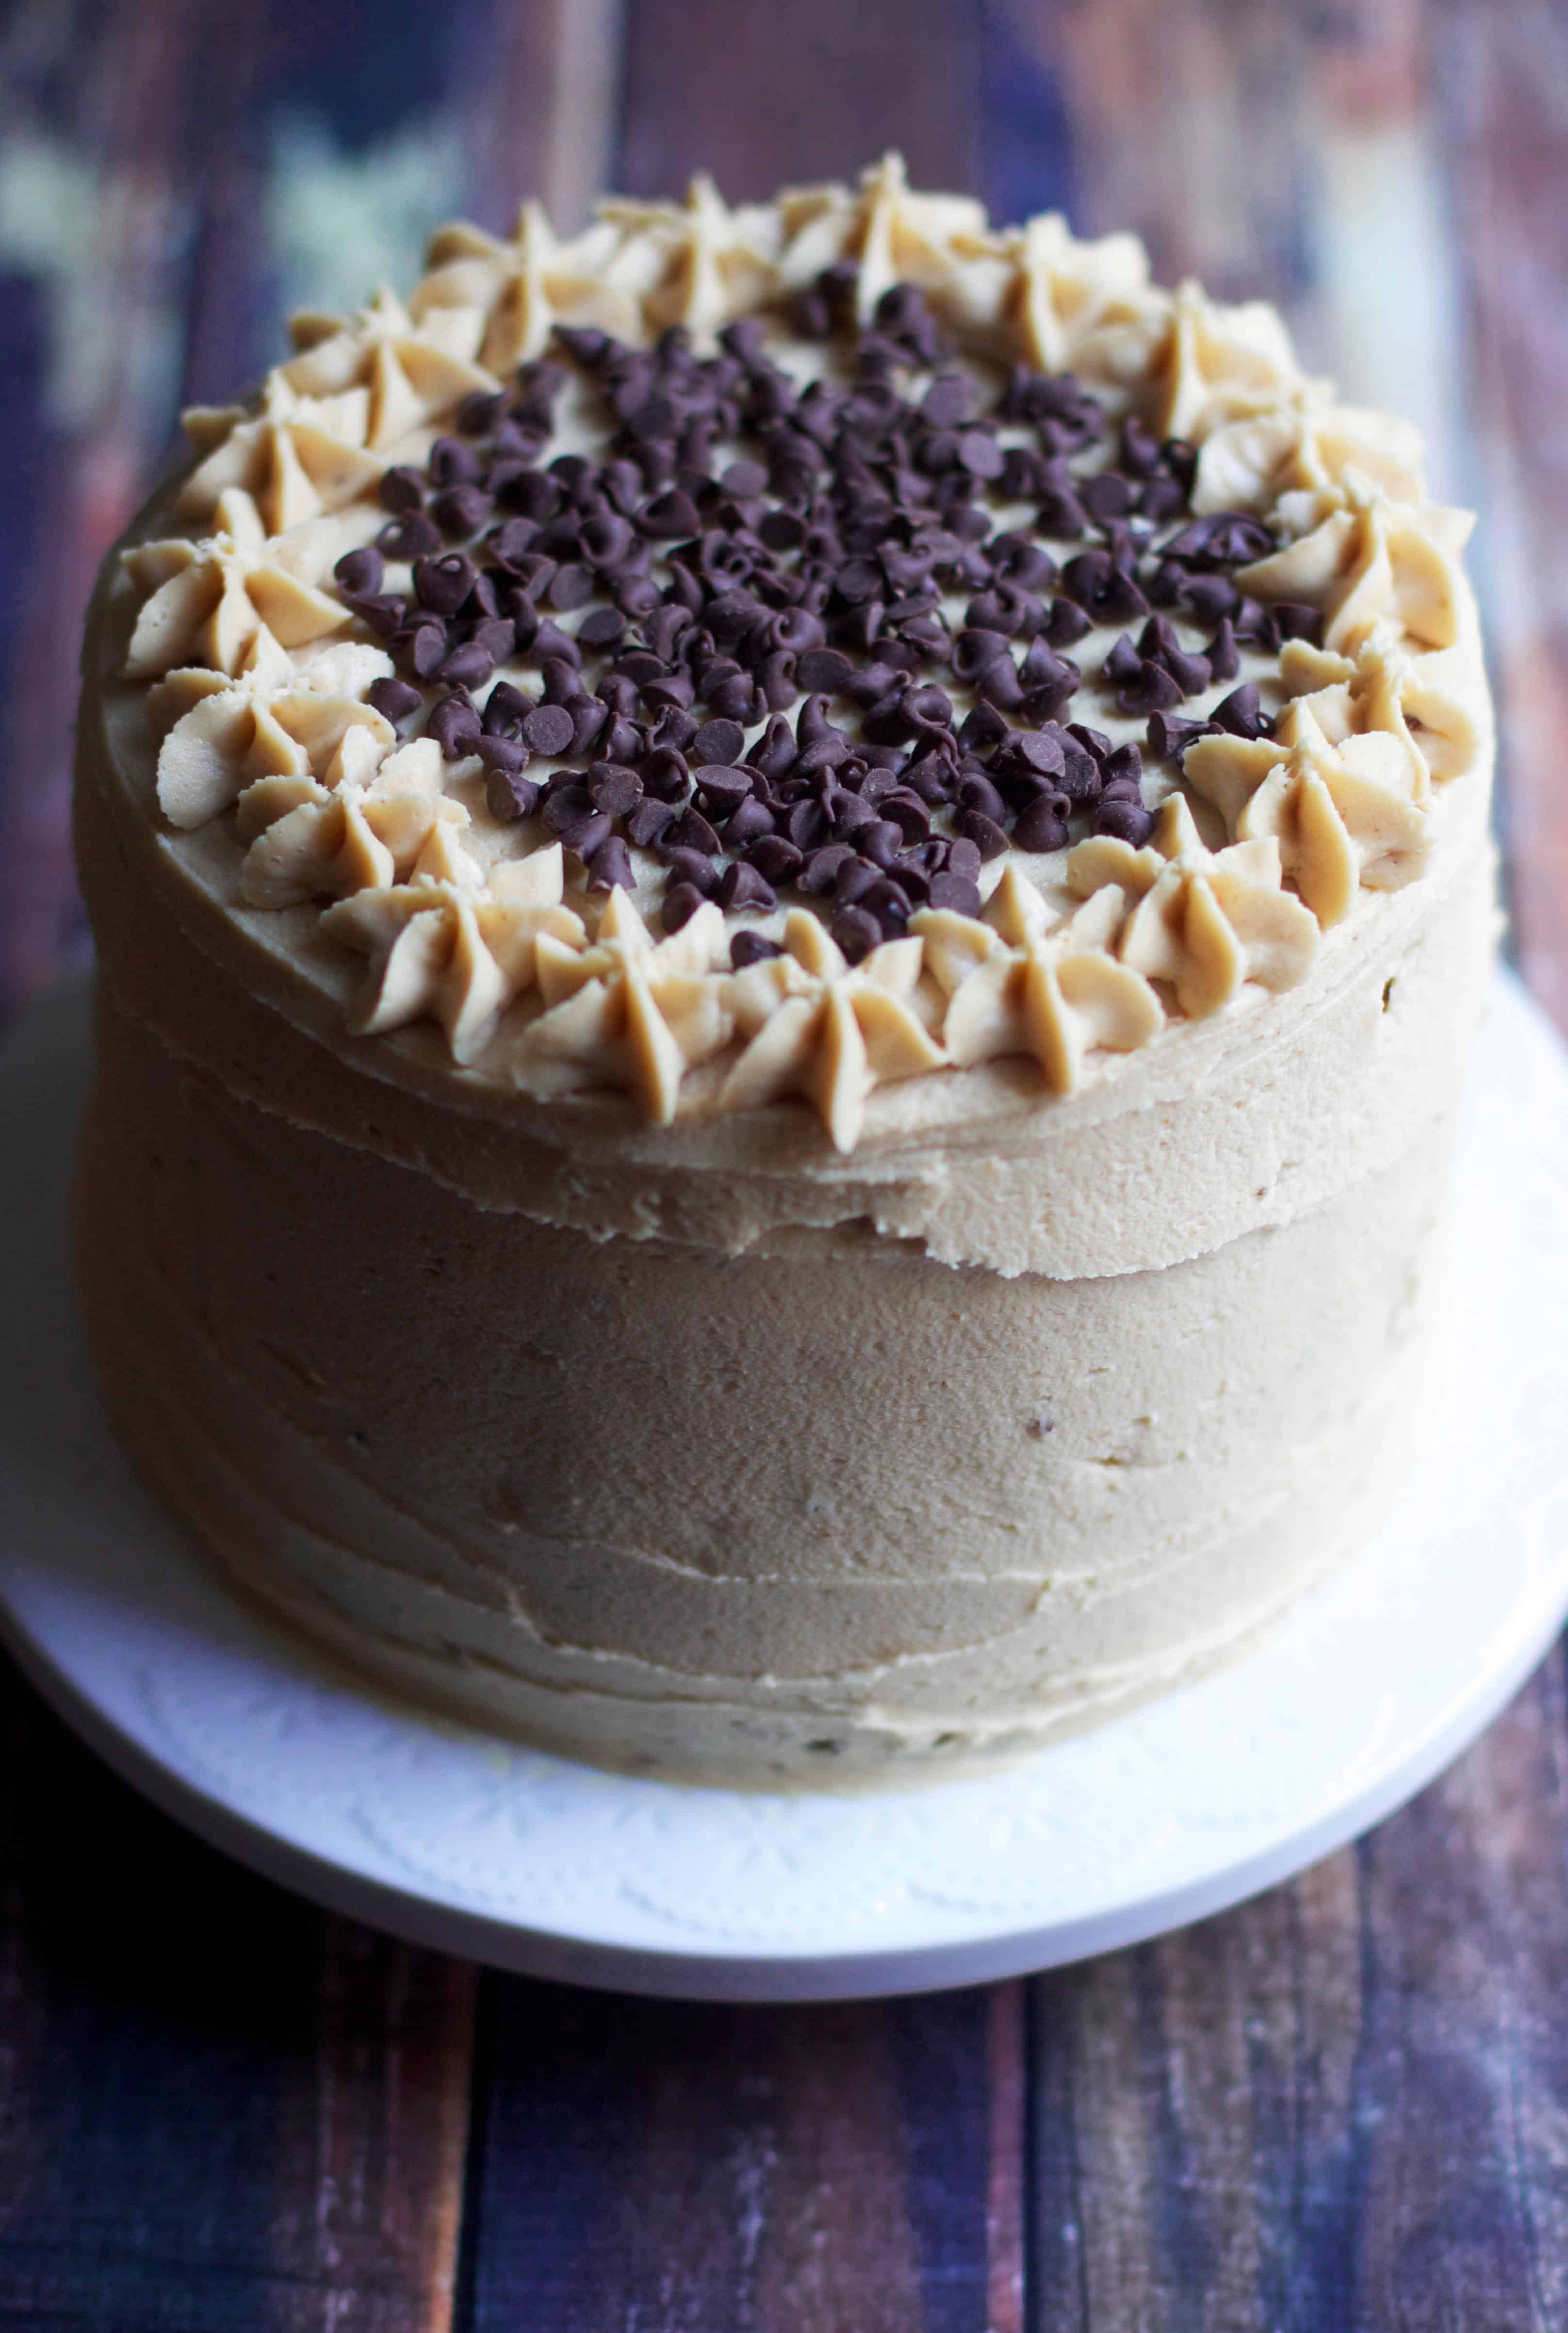 Superb Banana Chocolate Chip Layer Cake With Peanut Butter Frosting Personalised Birthday Cards Paralily Jamesorg